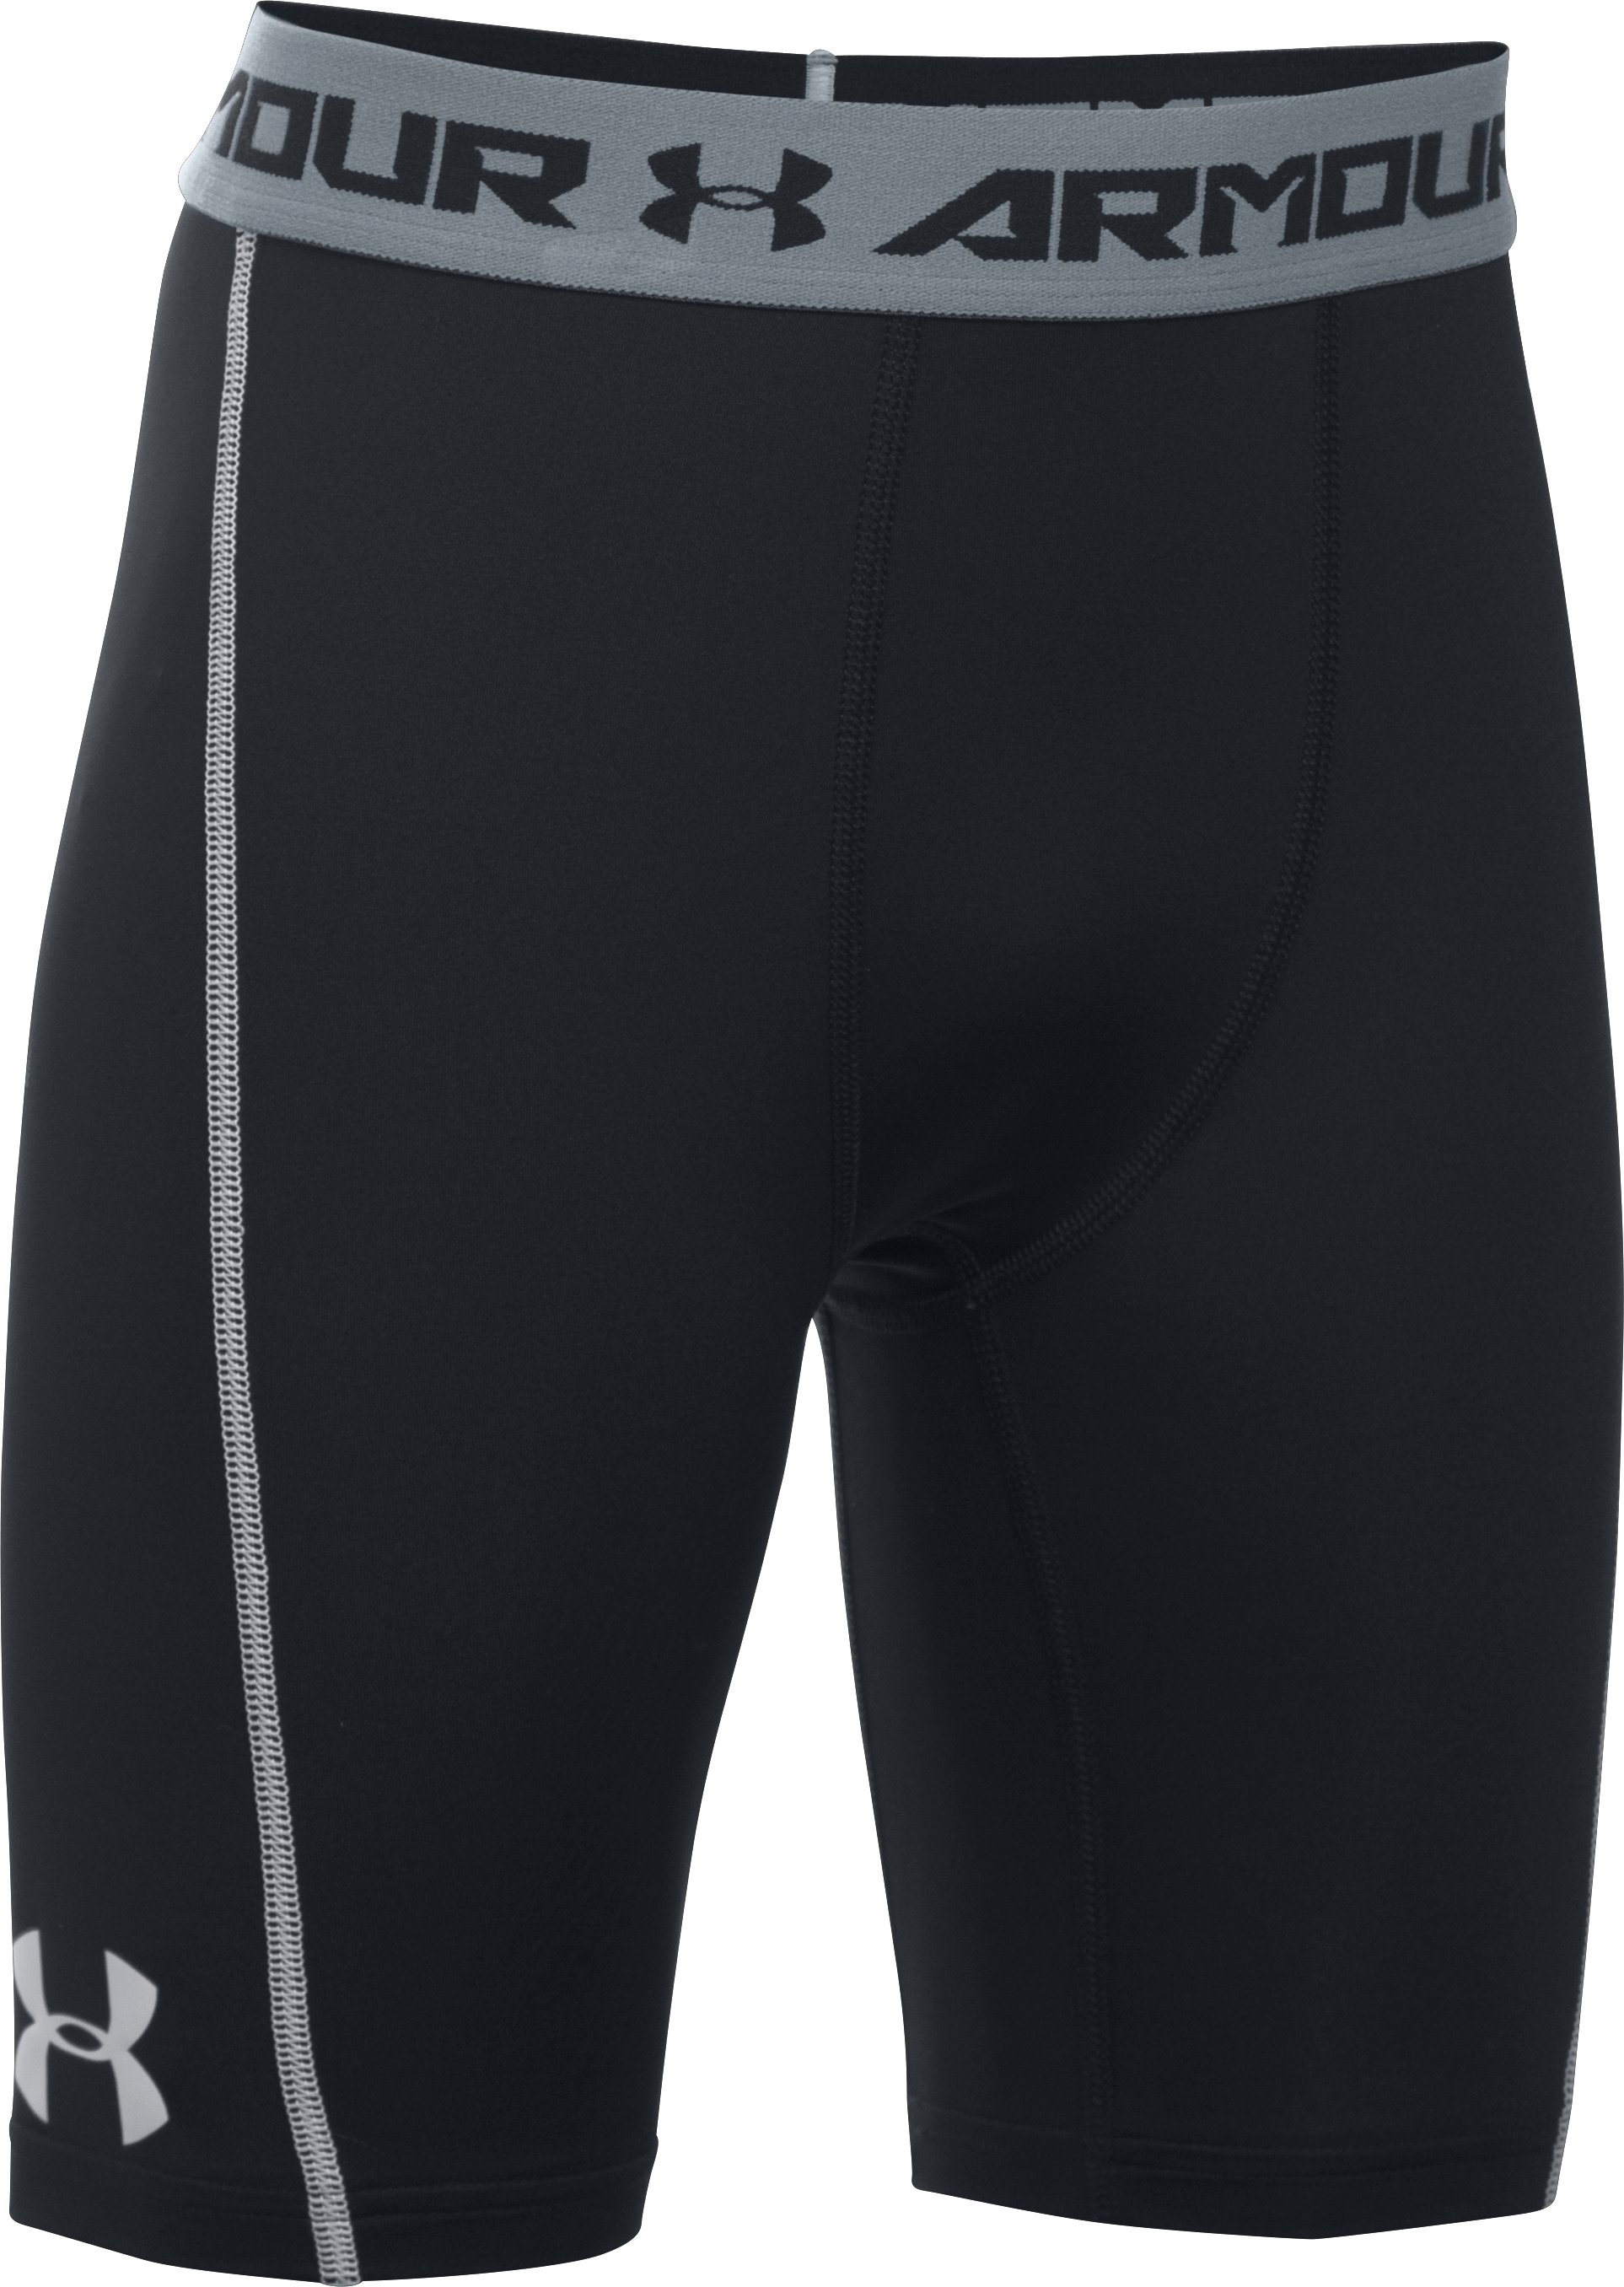 Boys' UA CoolSwitch Fitted Shorts, Black